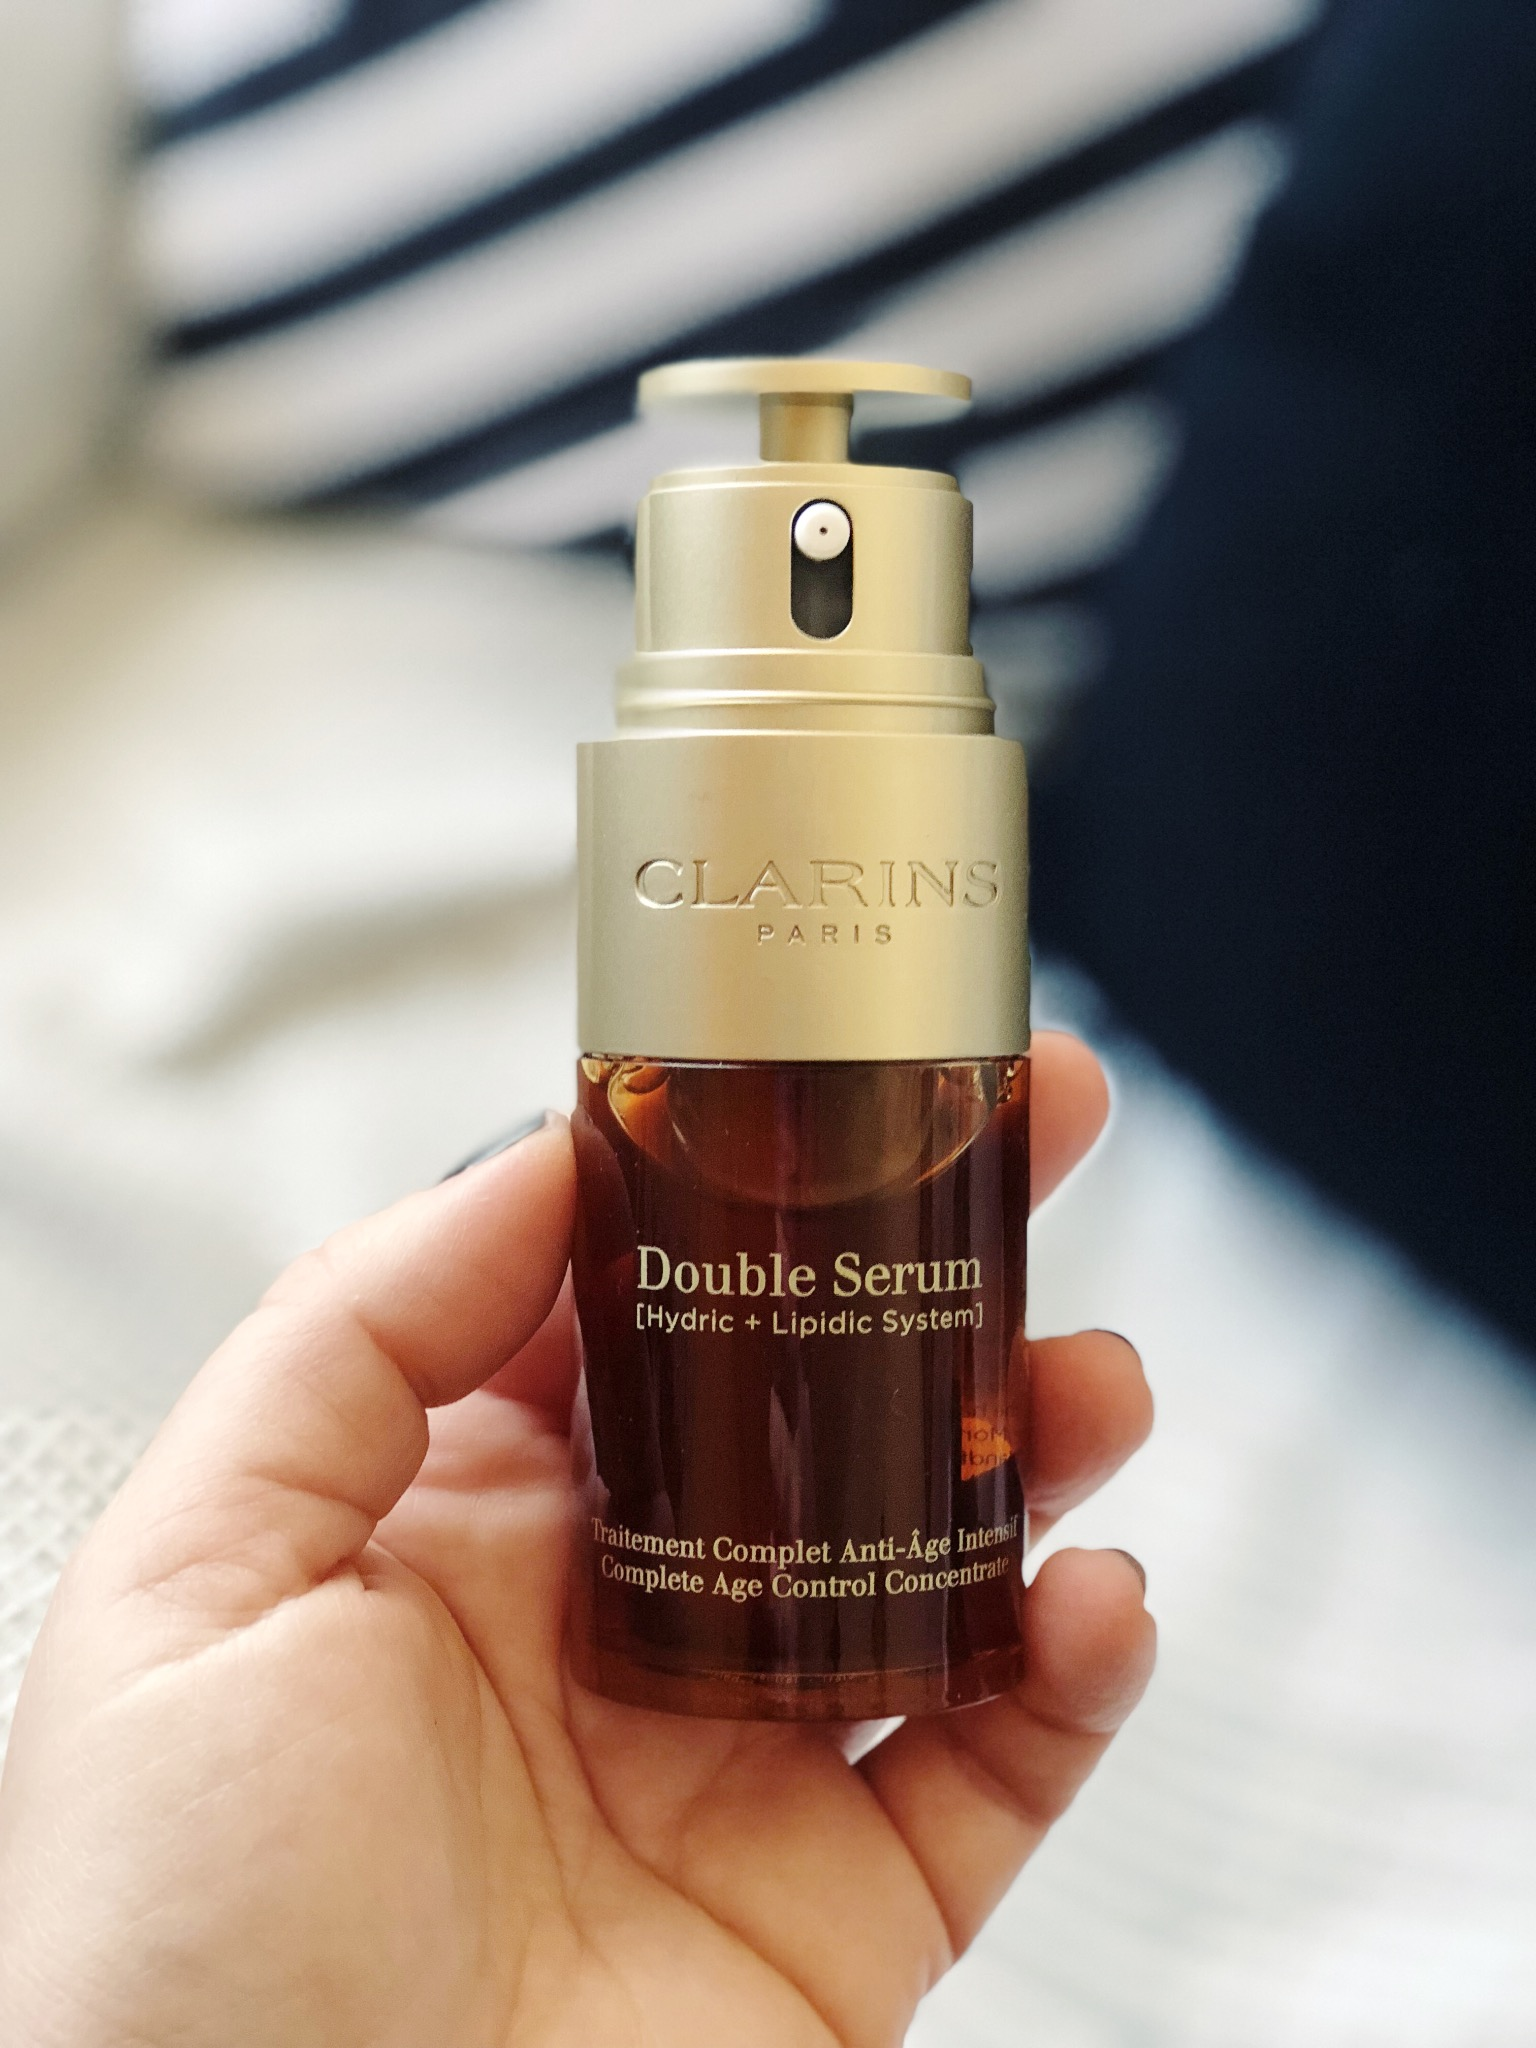 Clarins Double Serum, Misses Bond